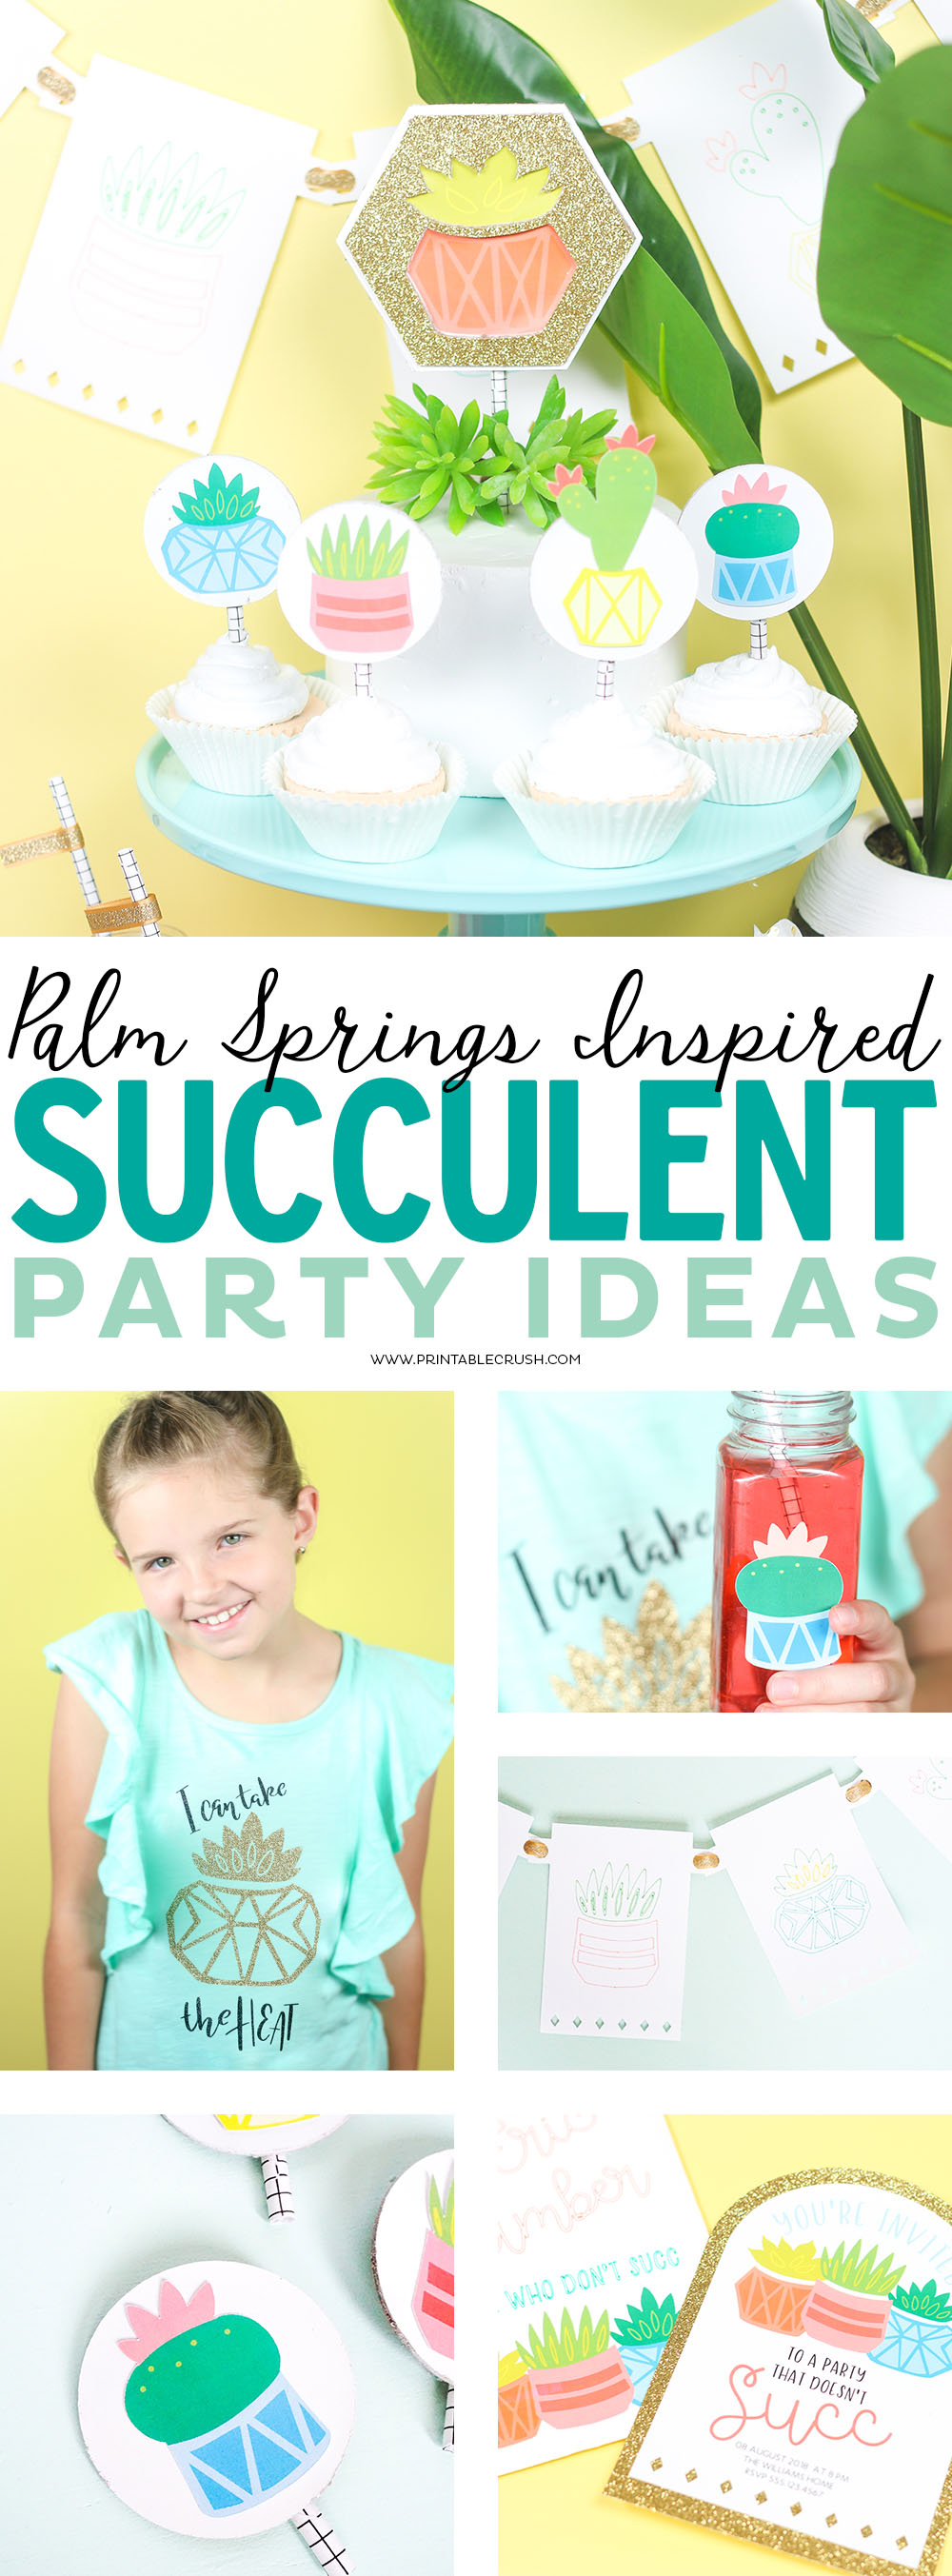 Palm Springs Inspired Succulent Party Ideas